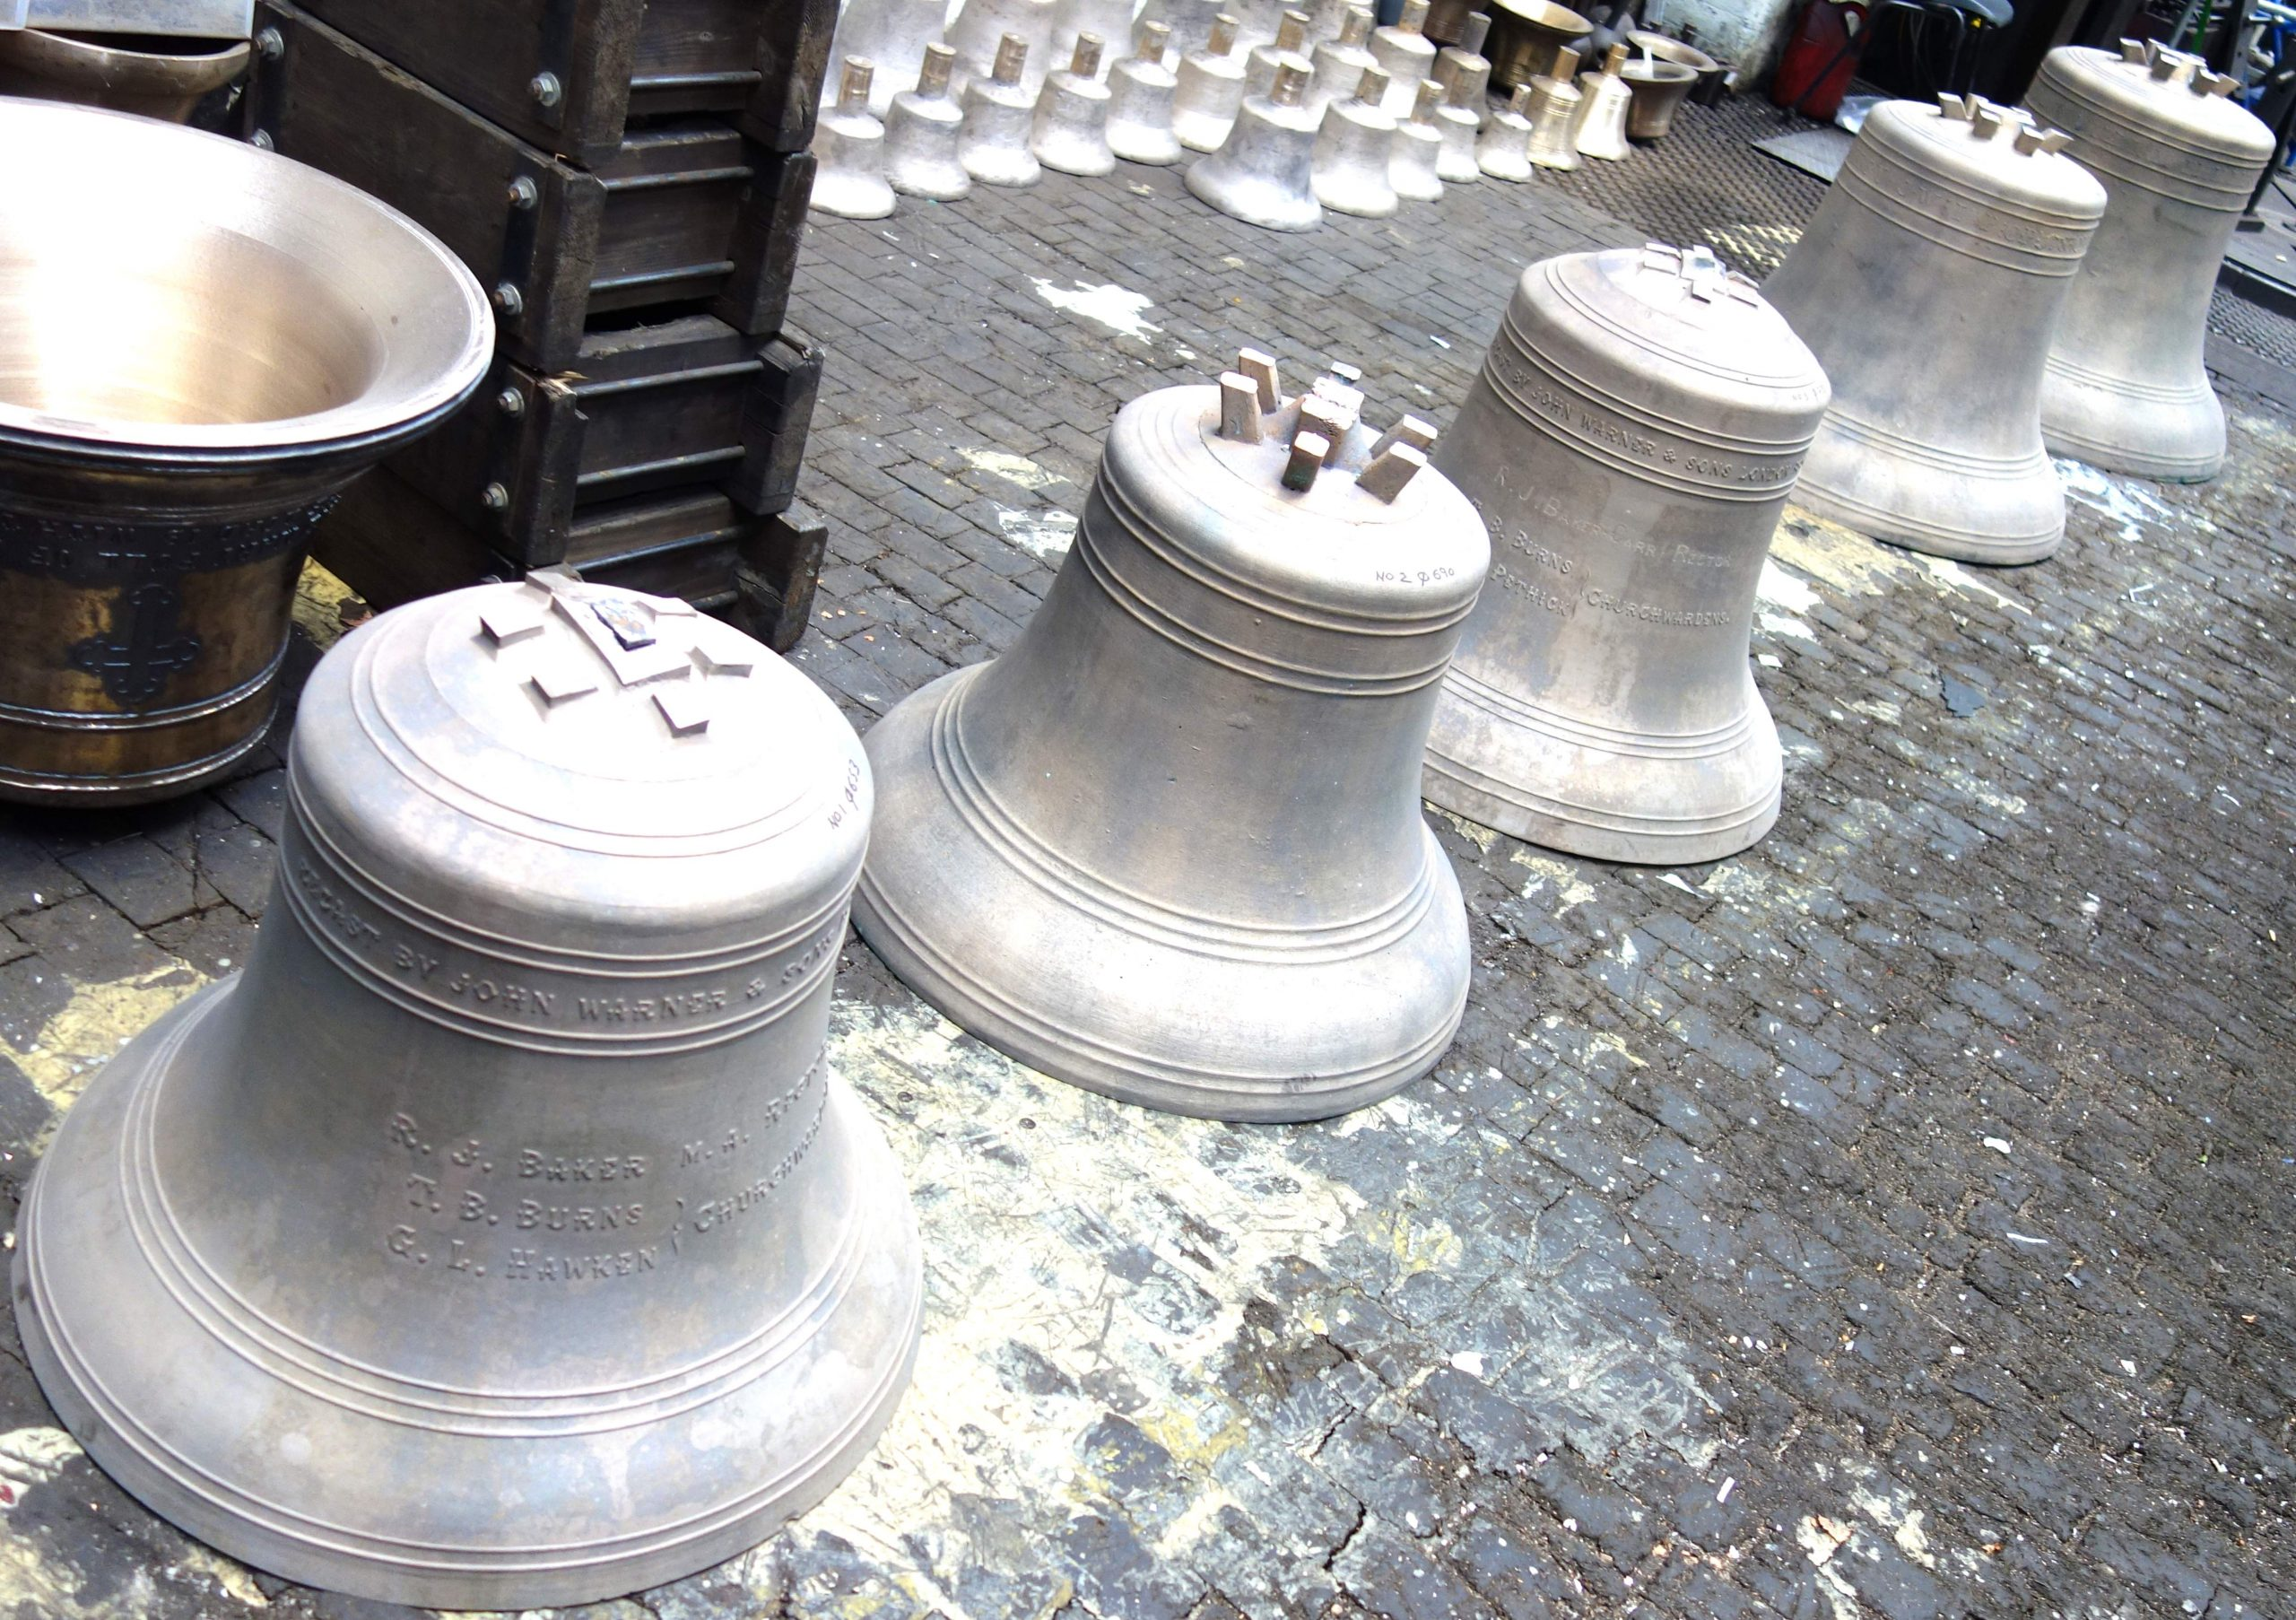 The canons have been removed ready for the casting of seating pads.